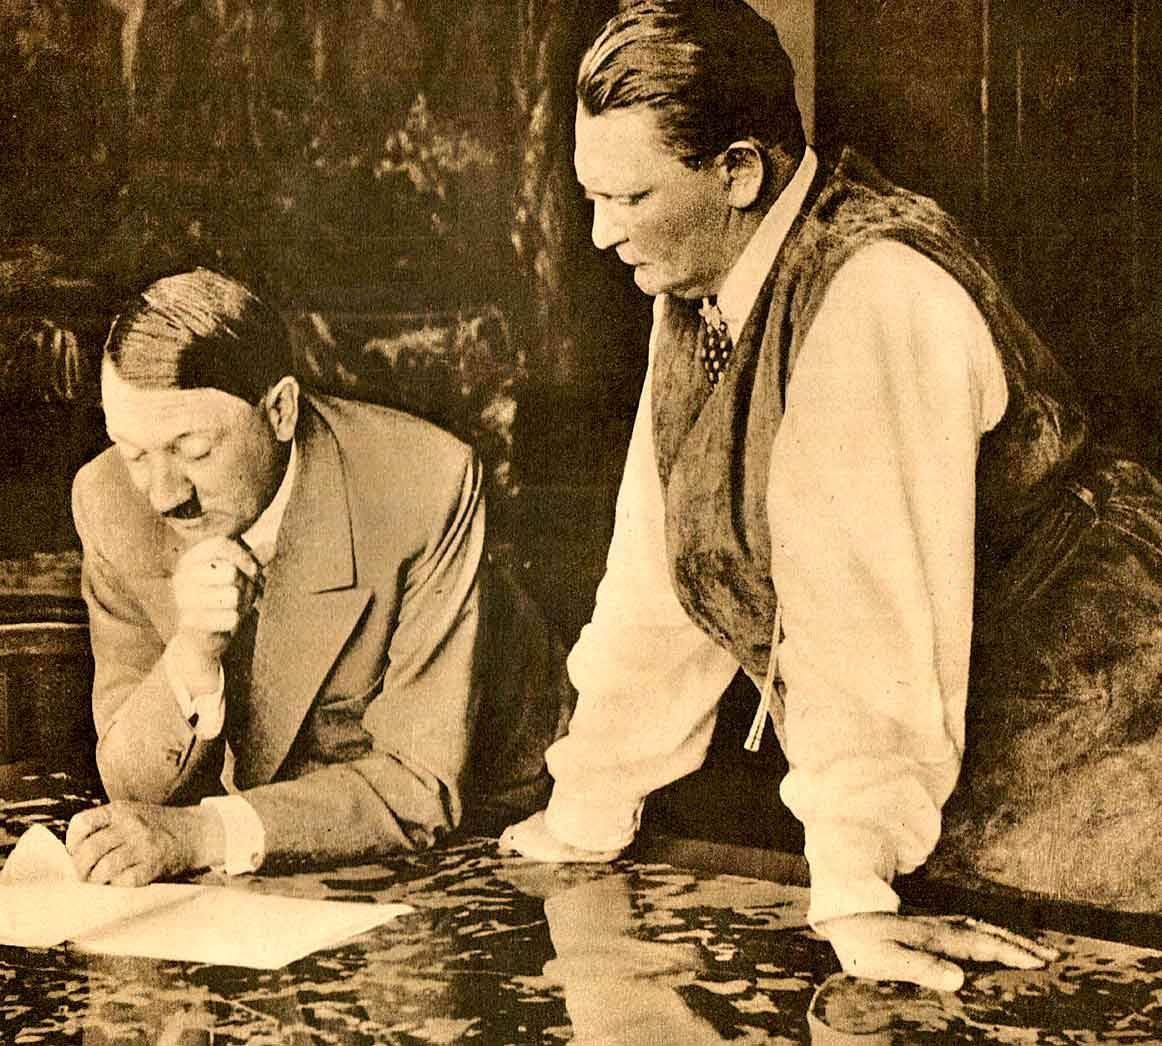 Hitler and Göring - 1938